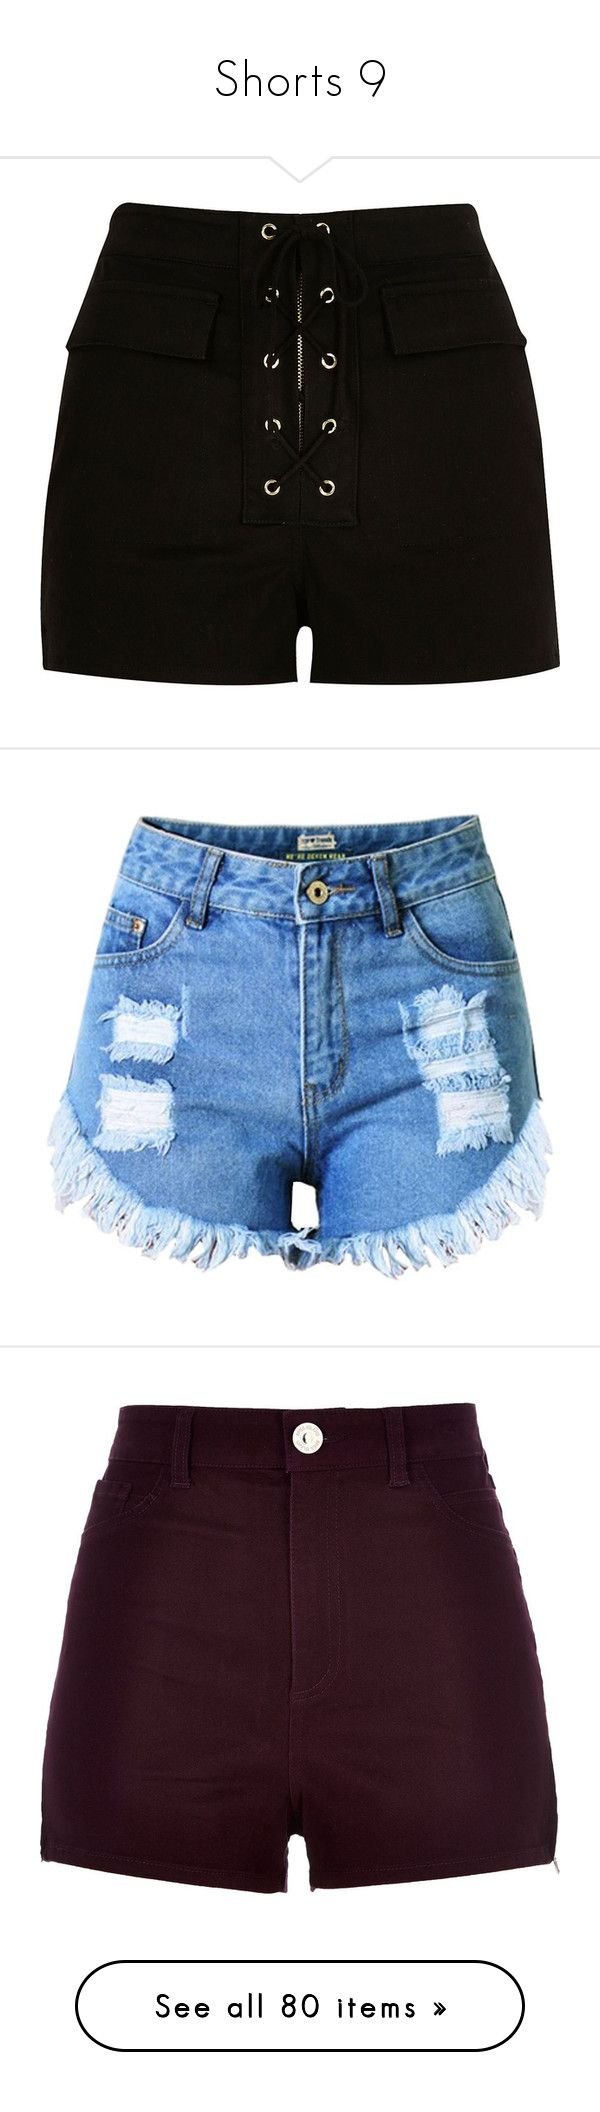 """""""Shorts 9"""" by musicmelody1 on Polyvore featuring shorts, bottoms, pants, short, black, smart shorts, women, high-waisted shorts, lace up shorts and river island"""